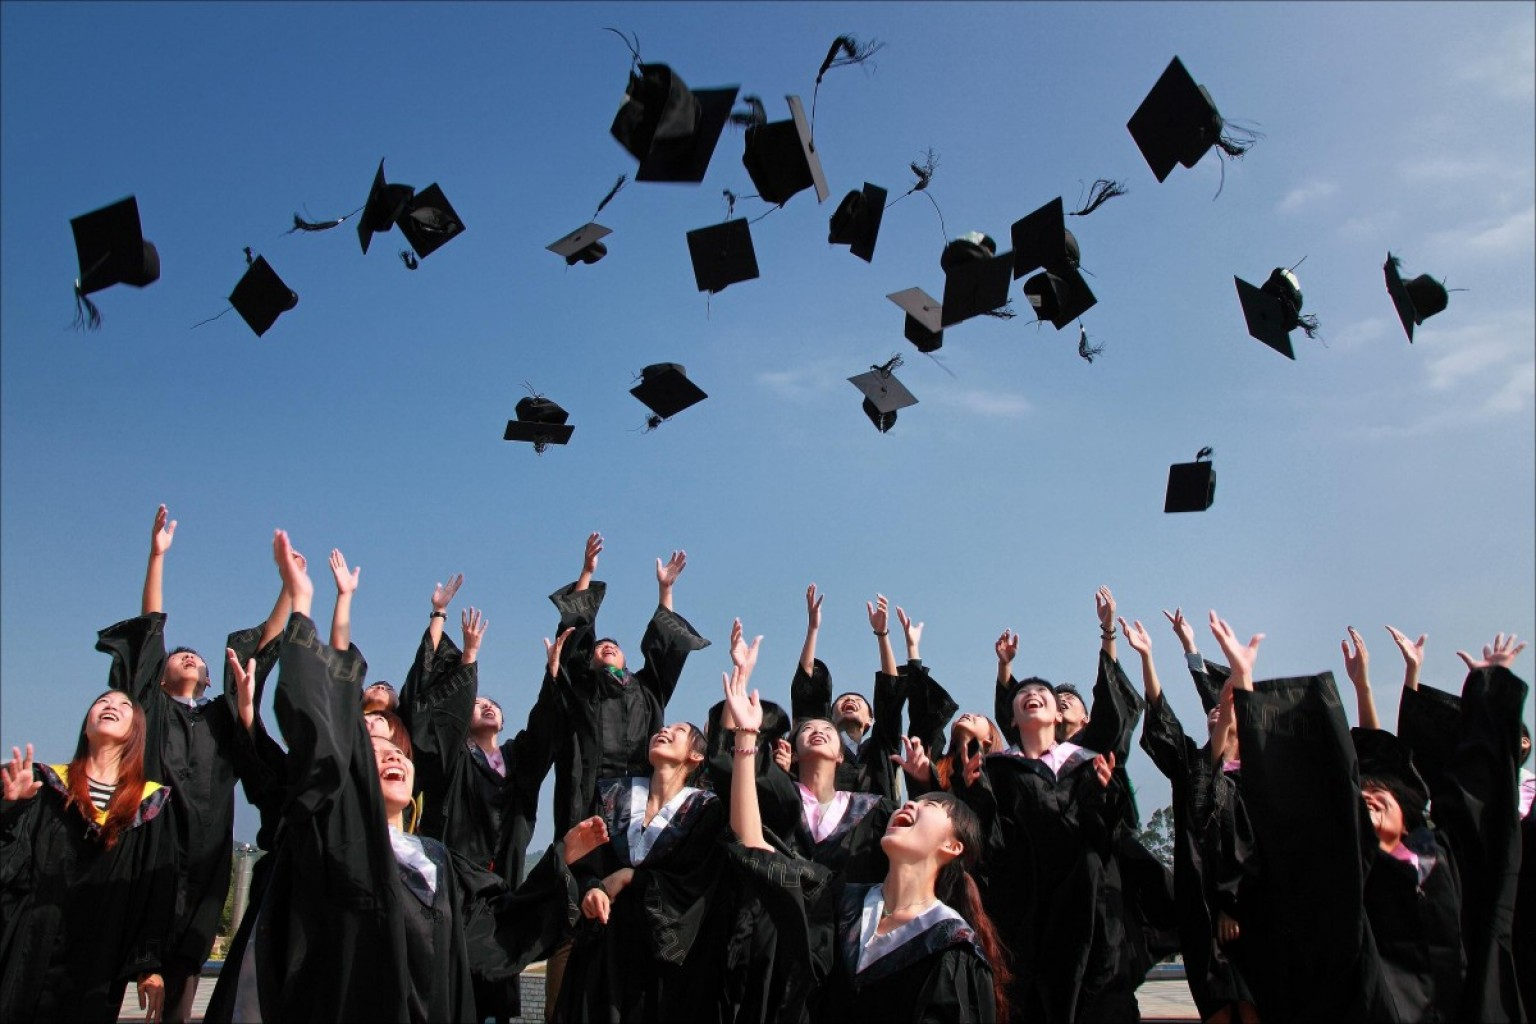 Contest offers one student $5,529 toward their college savings